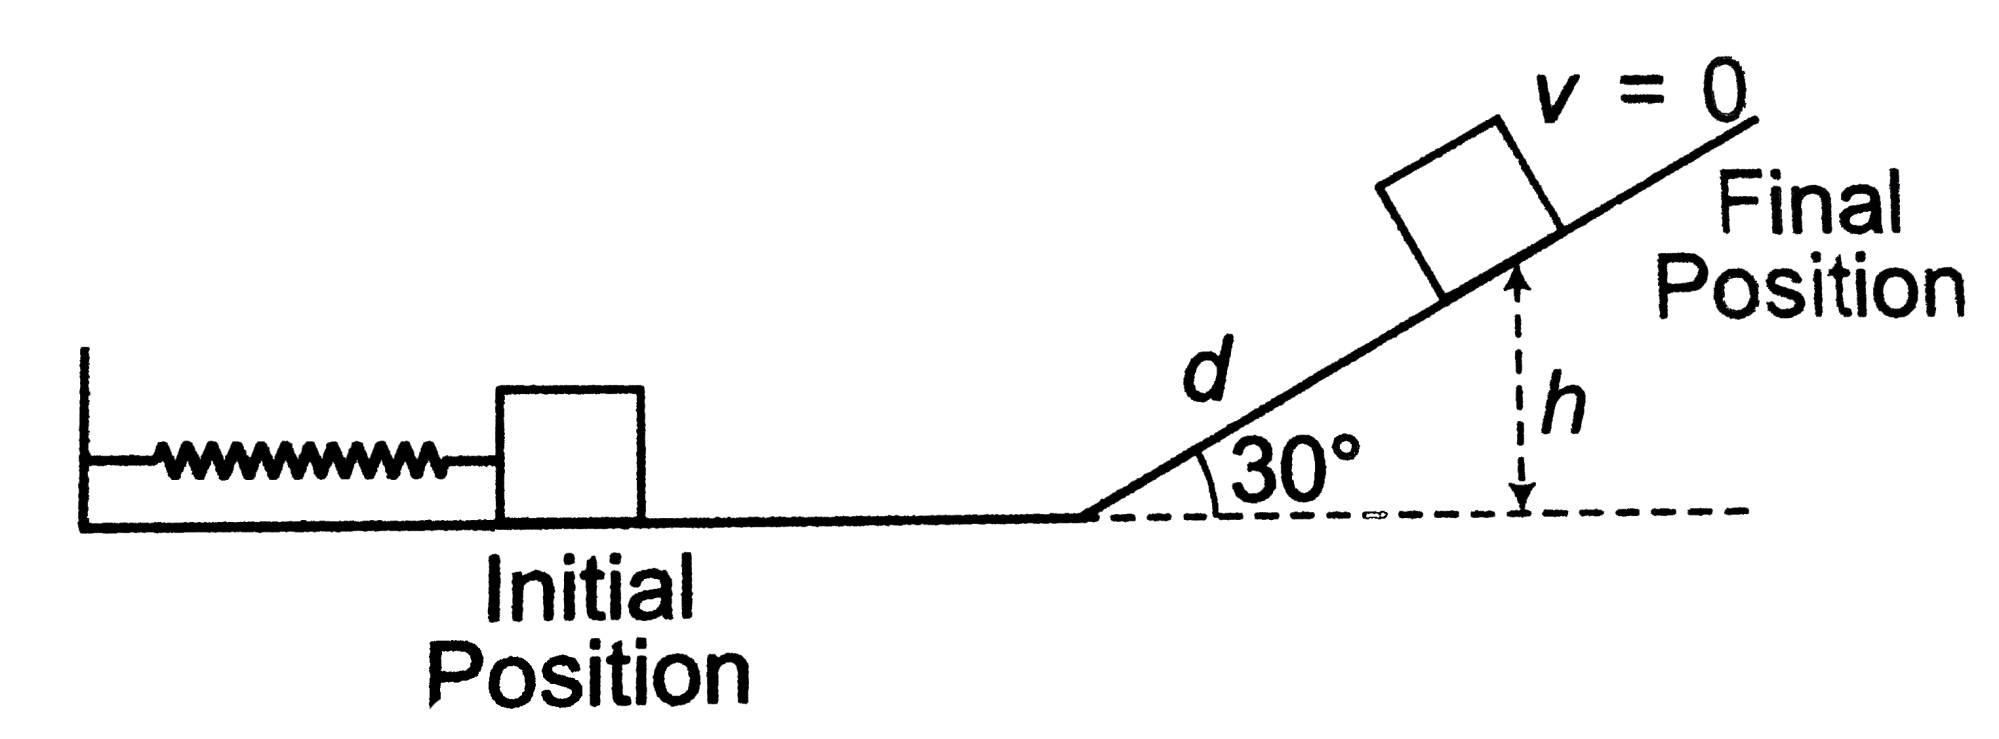 hight resolution of in the initial position system has only spring potential energy 12kx2 and in the final position it has only gravitation potential energy